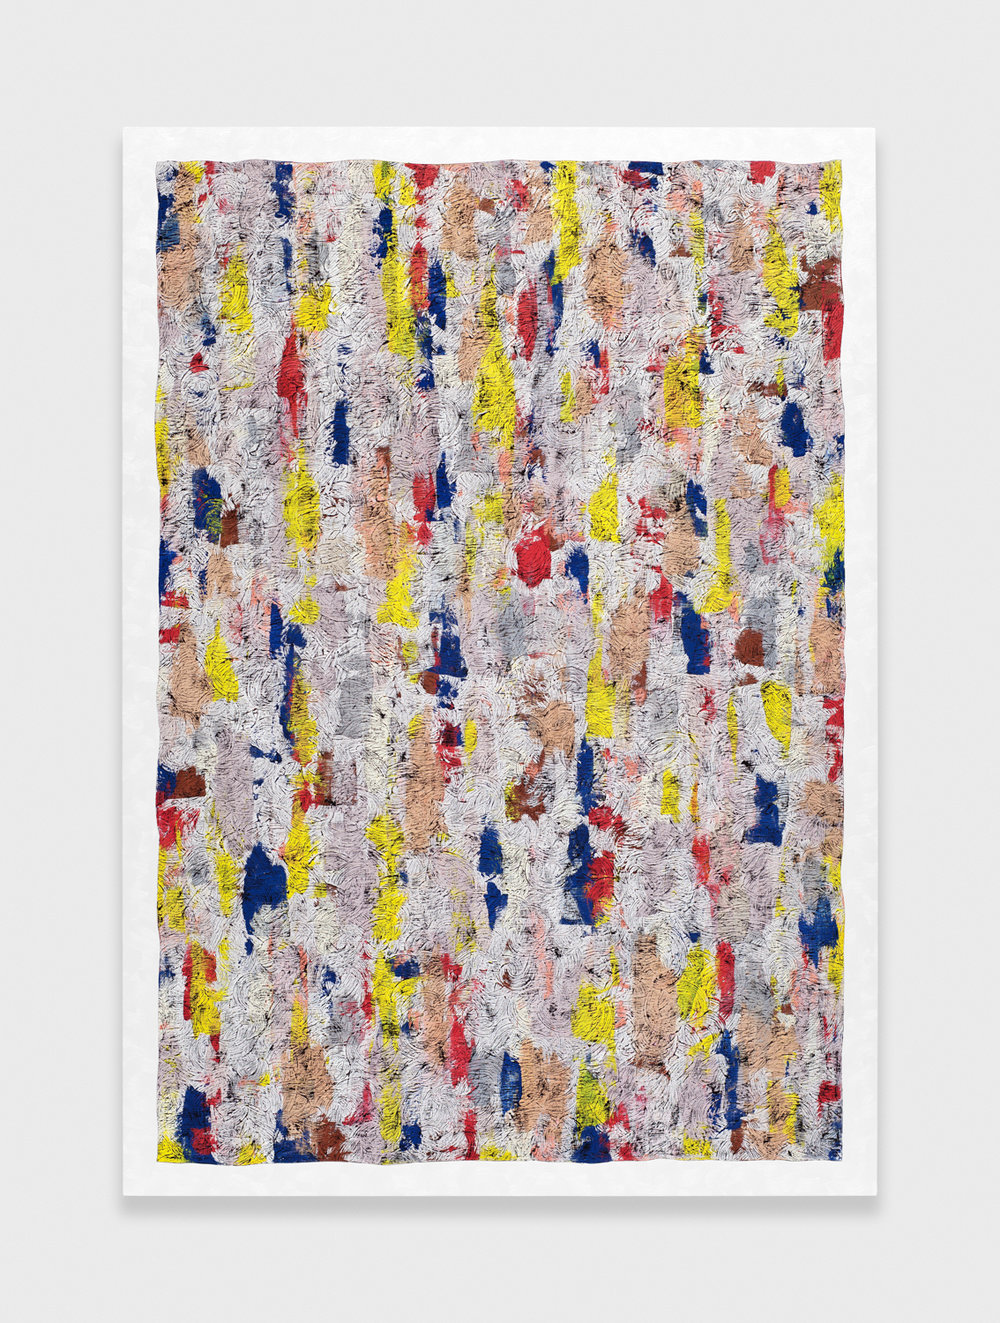 Alex Olson  Proposal #1  2012 Oil on linen 61h x 43w in AO098